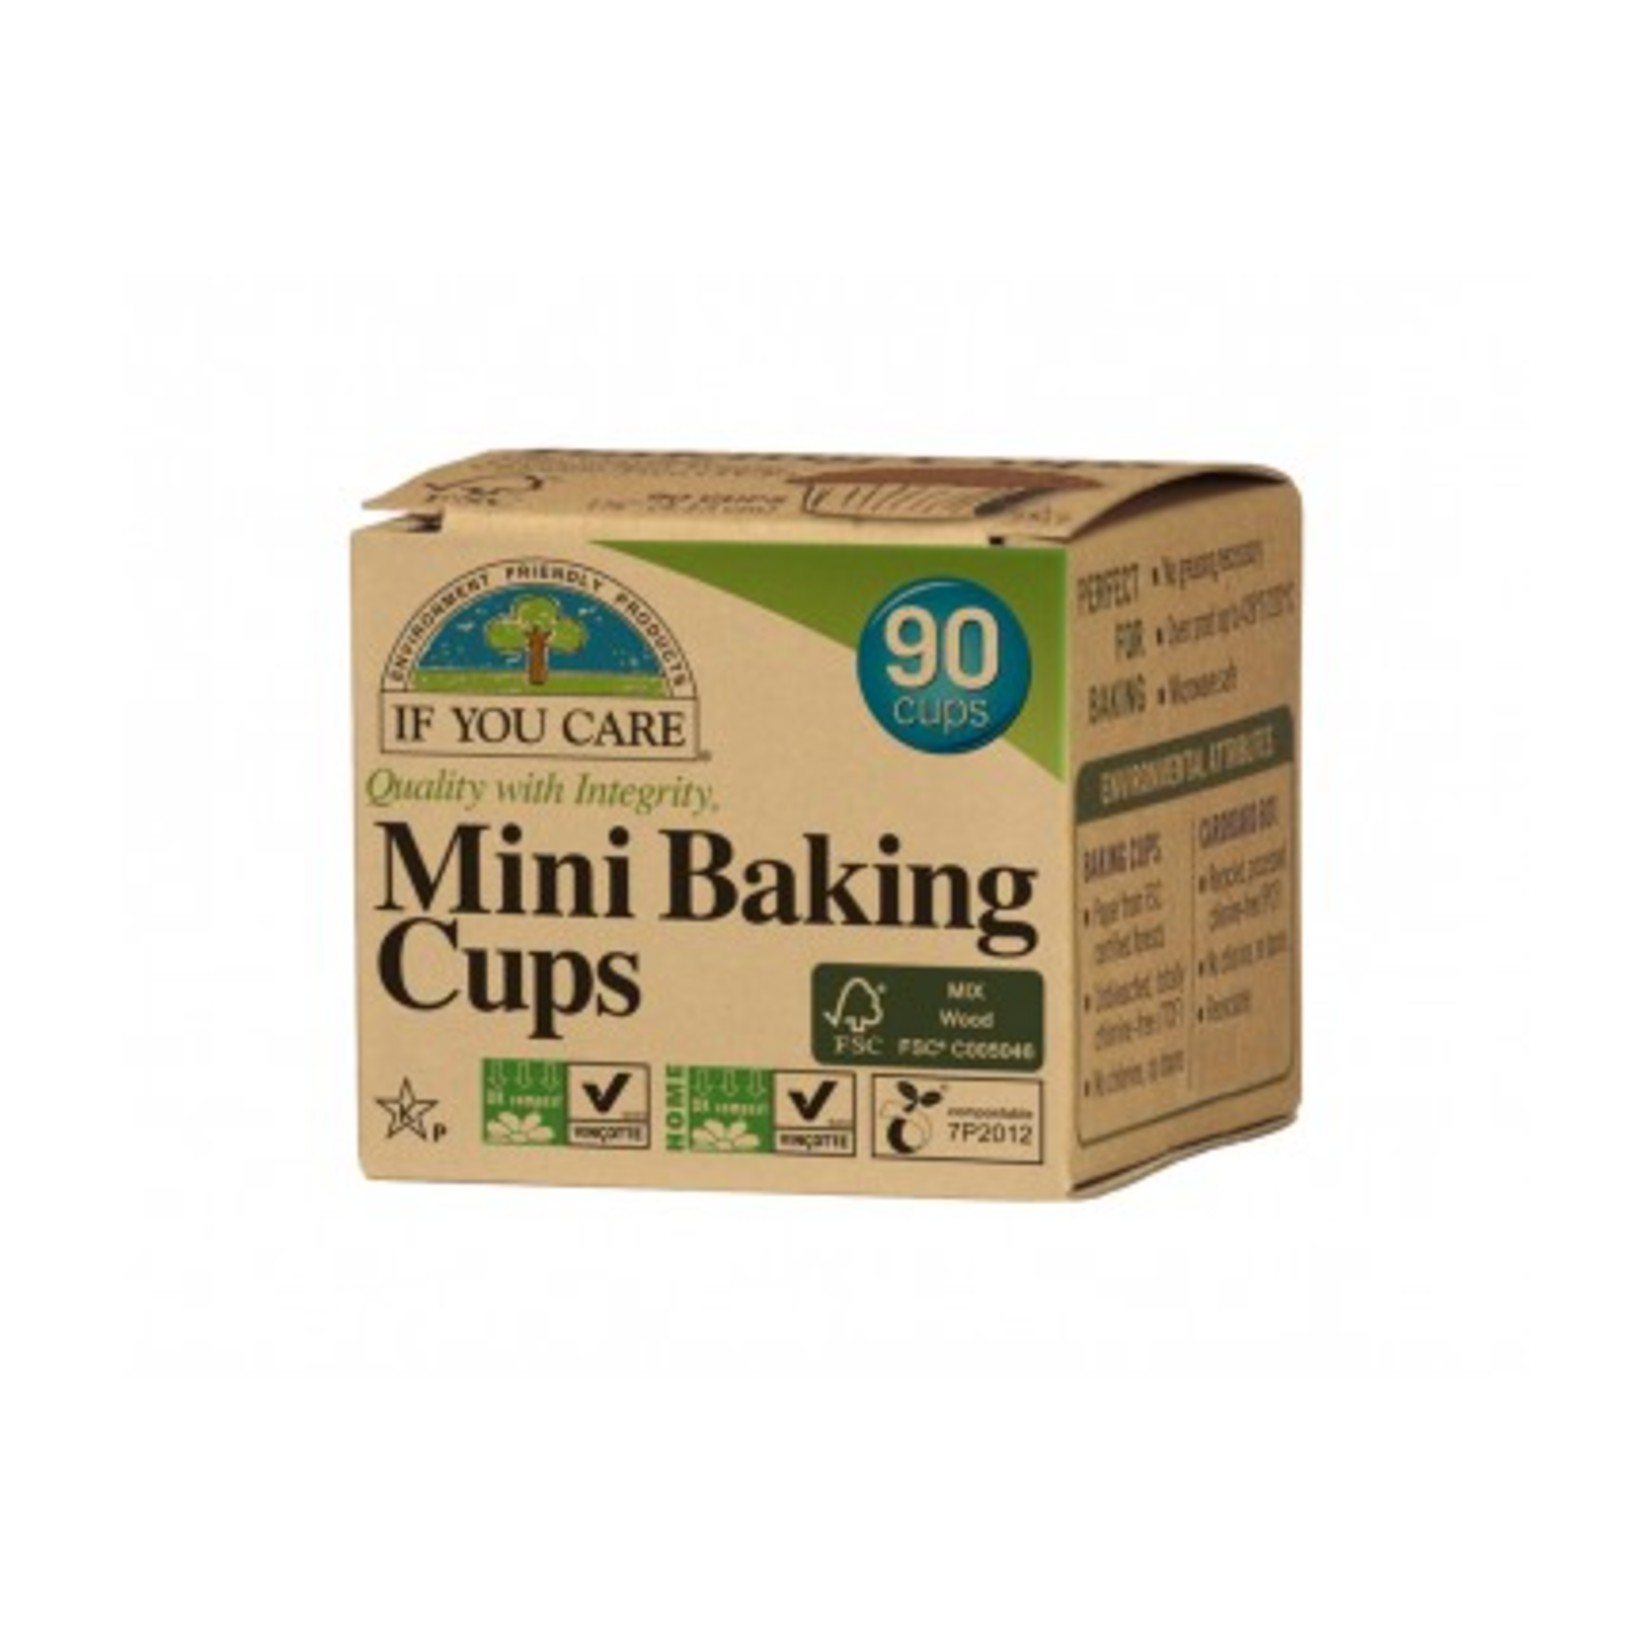 If You Care if You Care Baking Cups Mini 90pk